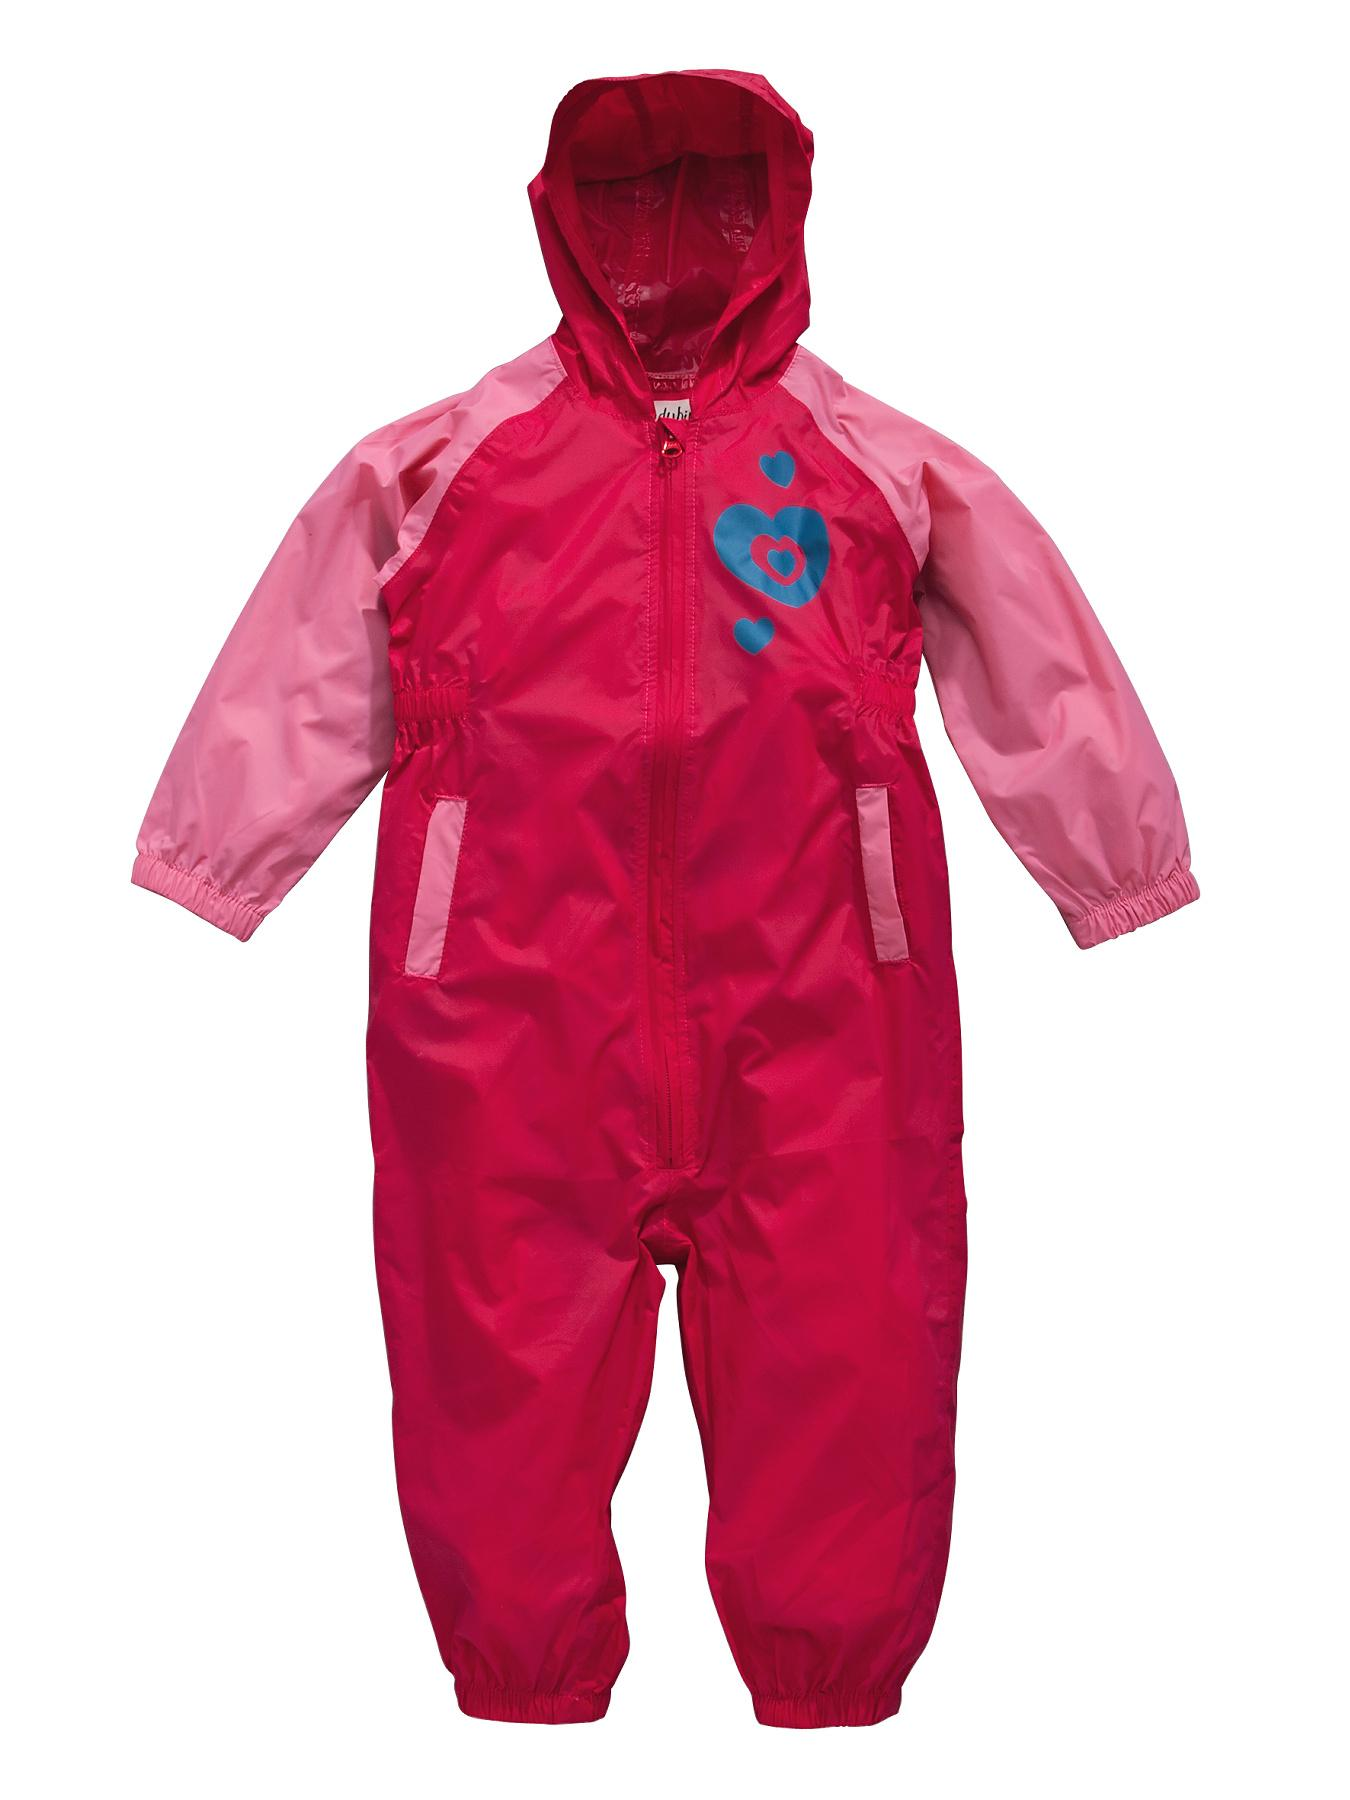 Girls Heart Puddlesuit, Pink at Littlewoods